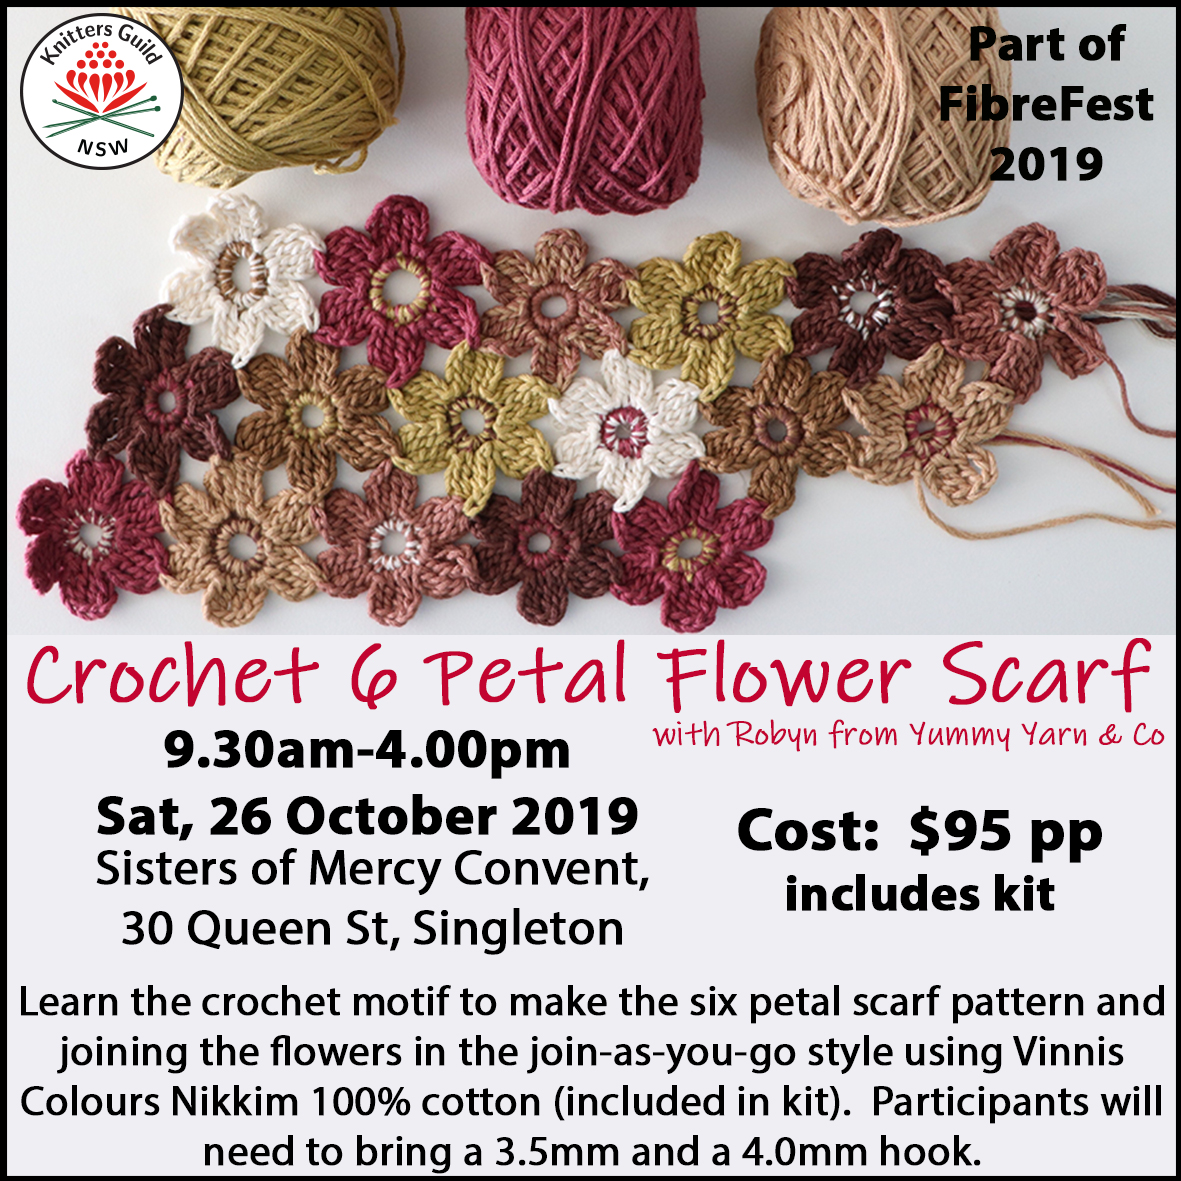 SixPetalFlowerScarf workshop